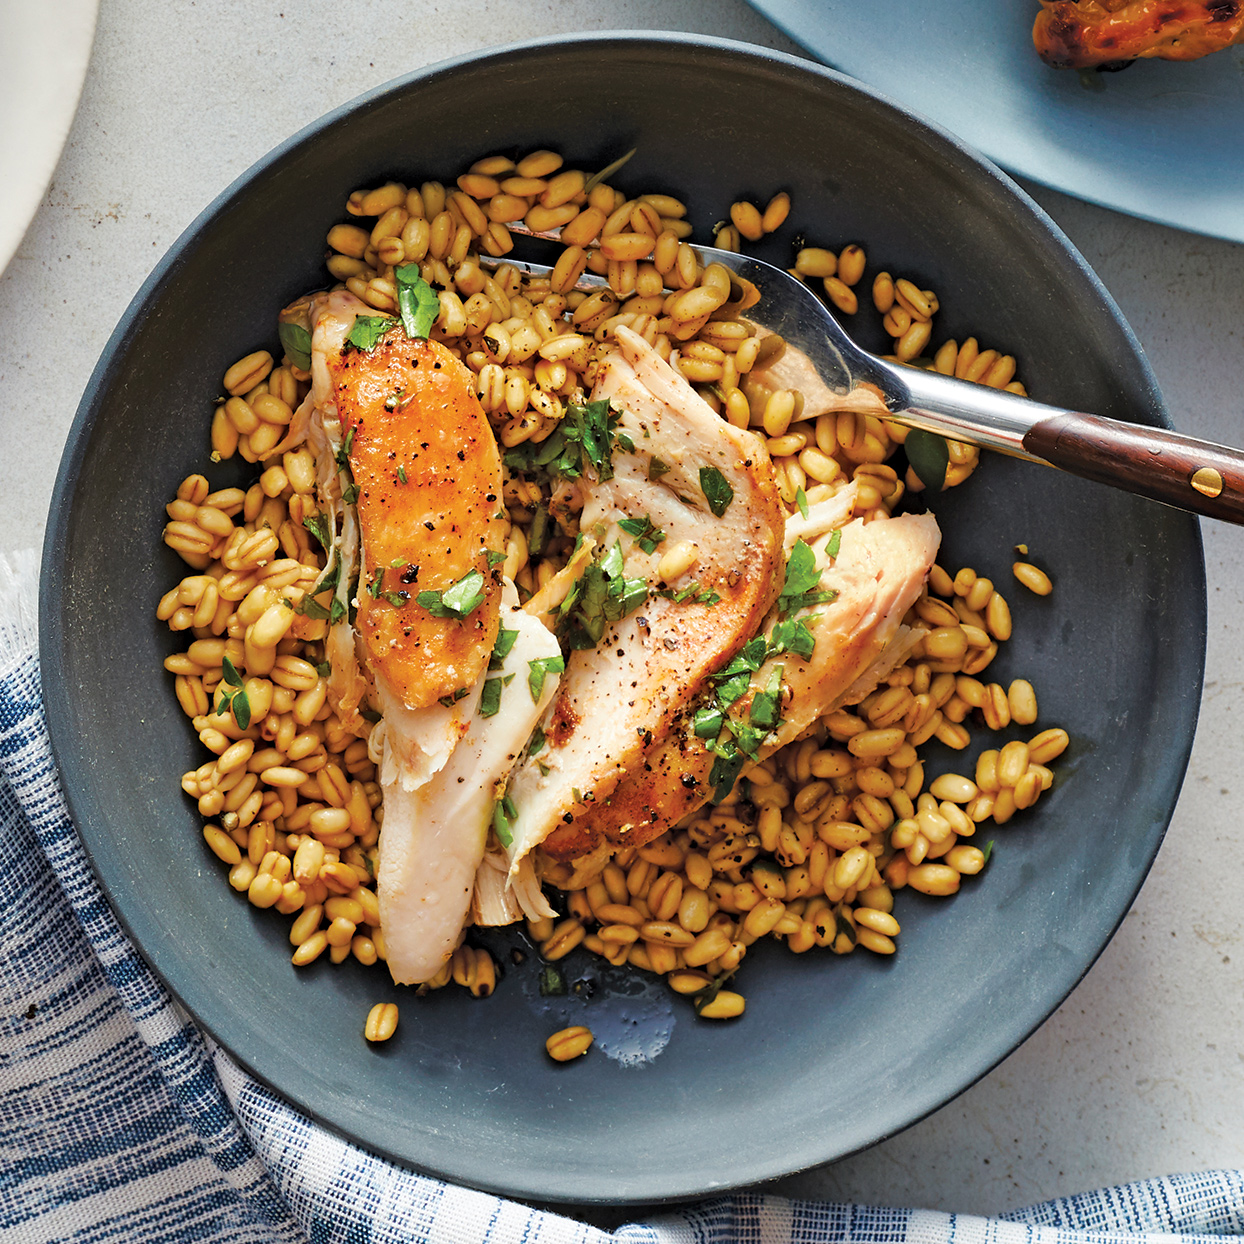 Pair earthy, toothsome barley with tender chicken dressed in a tangy white balsamic vinaigrette for a hearty main dish. This Instant Pot chicken recipe comes together in just 40 minutes, making it perfect for easy weeknight dinners.